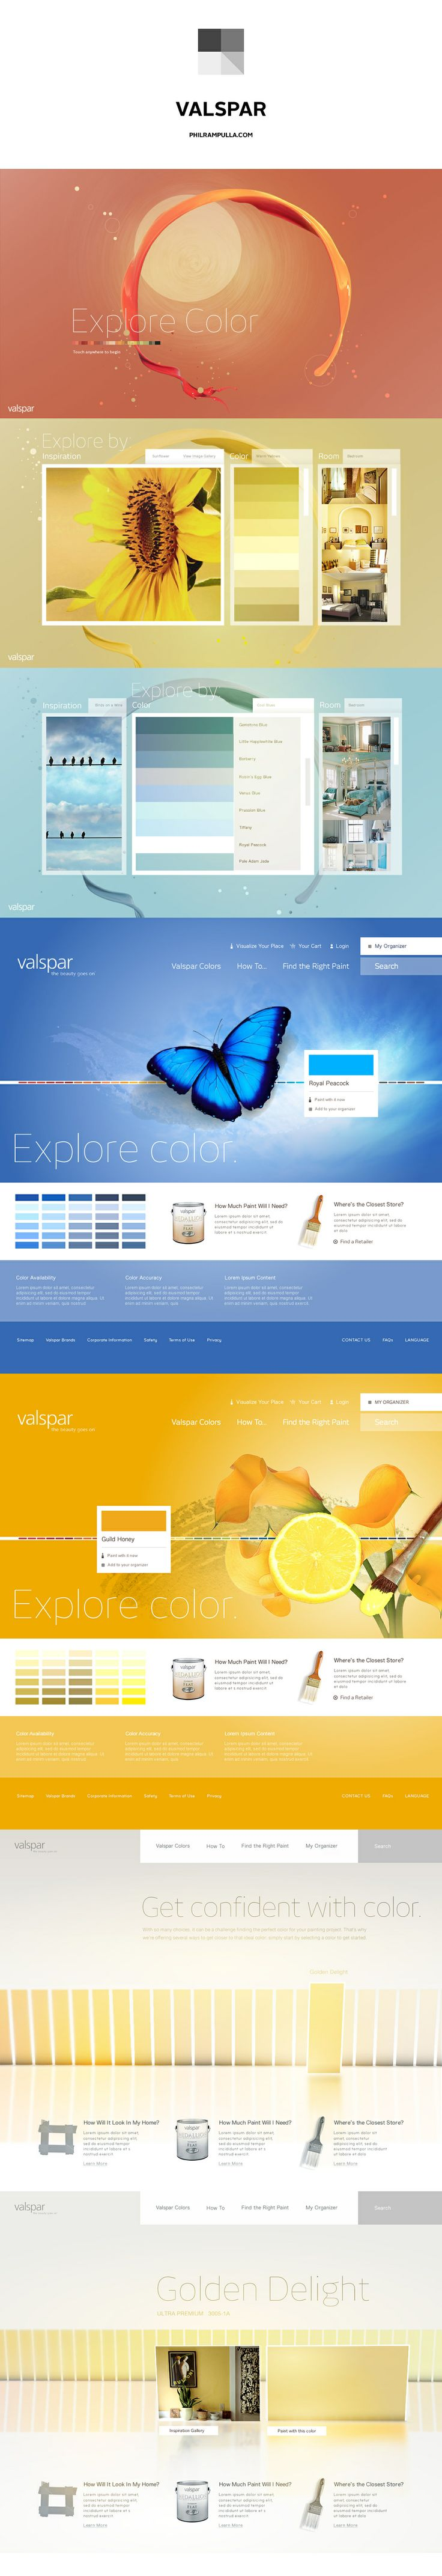 Valspar - Explore Color Website and Kiosk design by Phil Rampulla  www.philrampulla.com